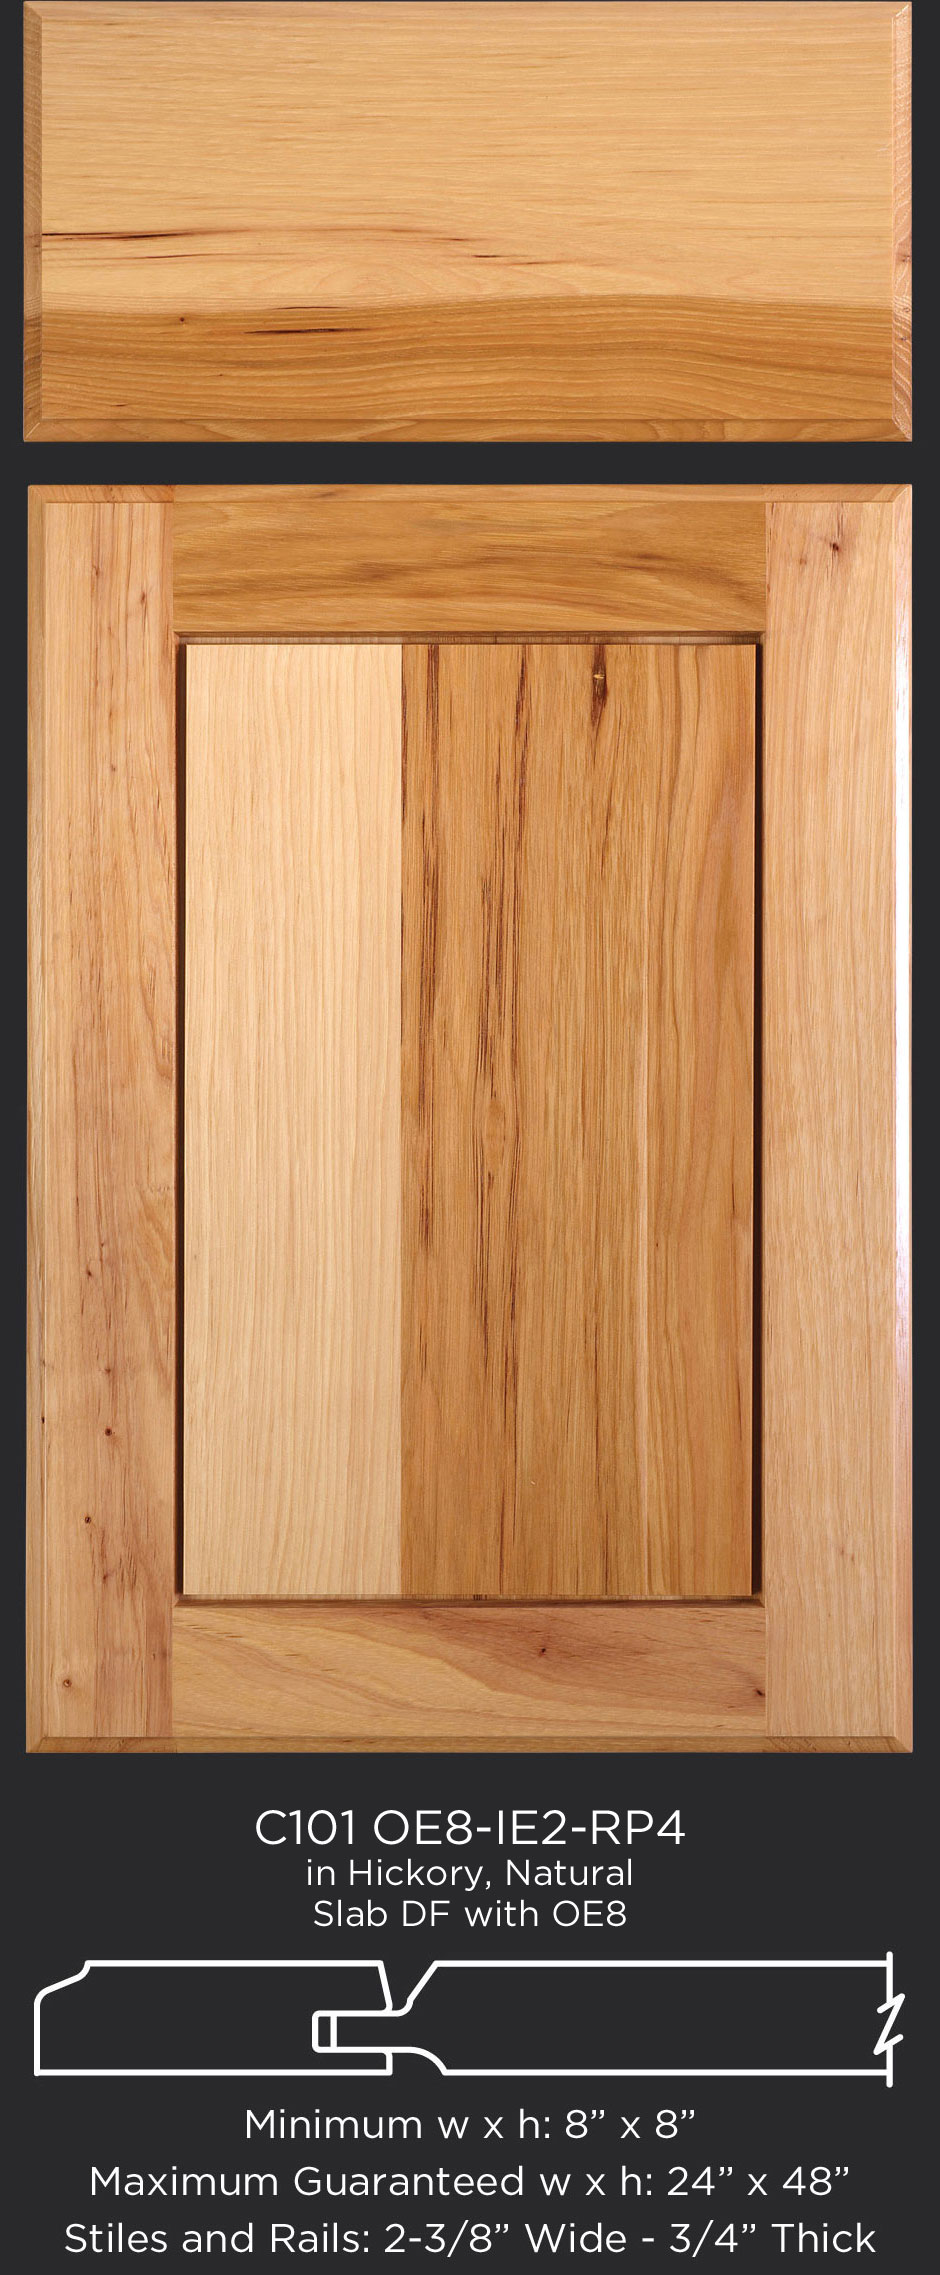 Cope And Stick Cabinet Door C101 Oe8 Ie2 Rp4 Hickory Natural Slab